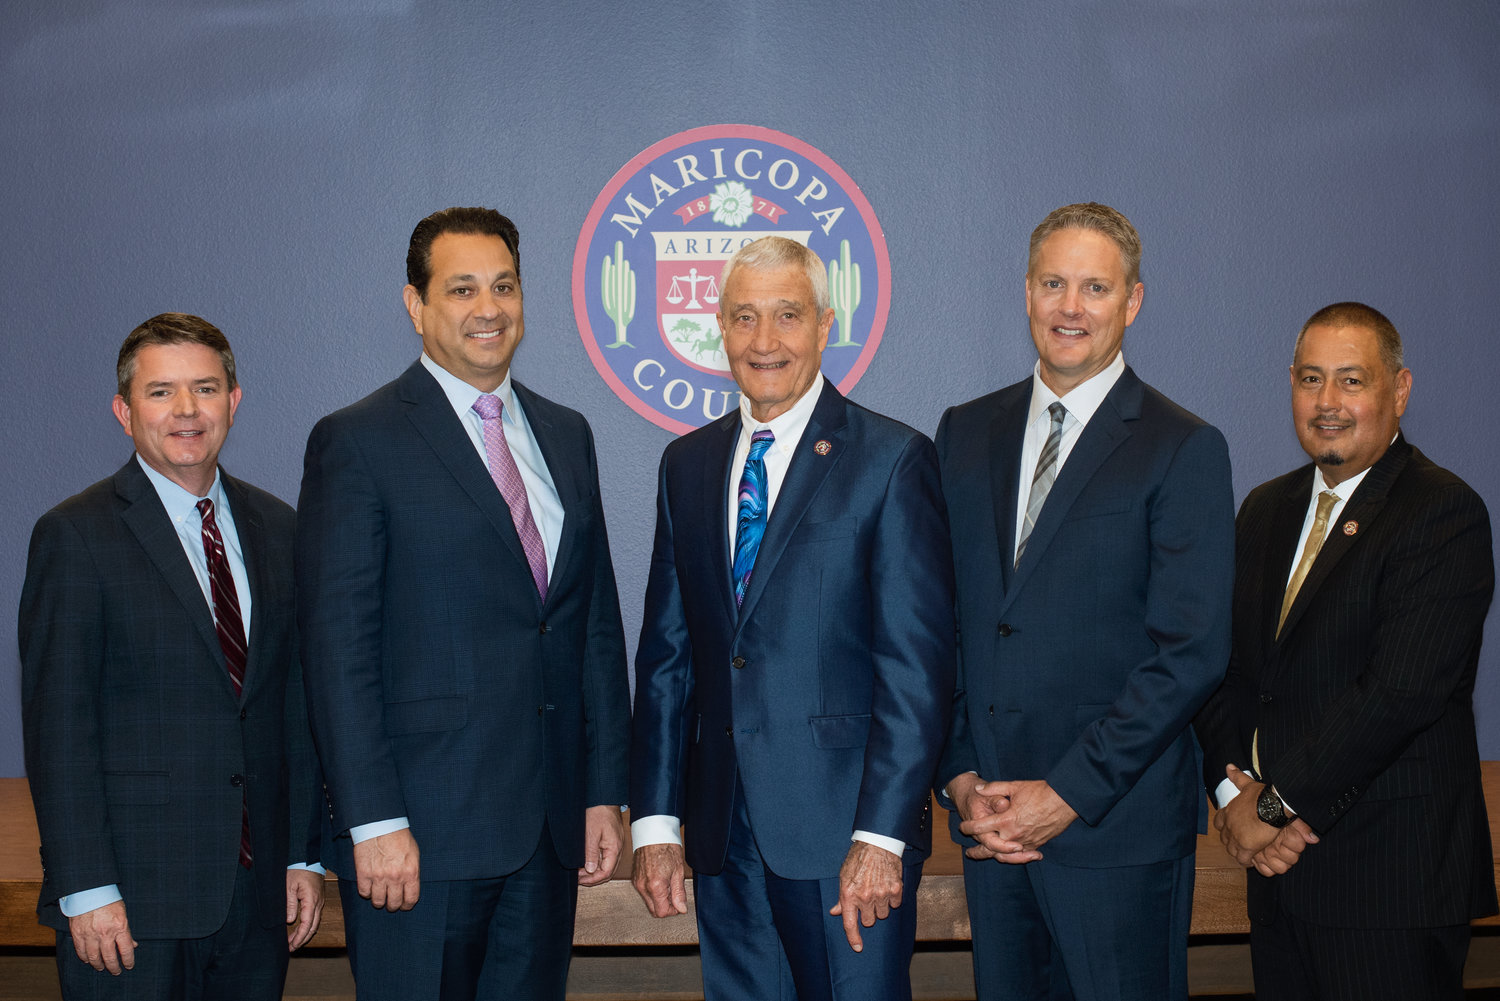 The Maricopa County Board of Supervisors is comprised of, from left, Bill Gates, Steve Chucri, Jack Sellers, Clint Hickman and Steve Gallardo.